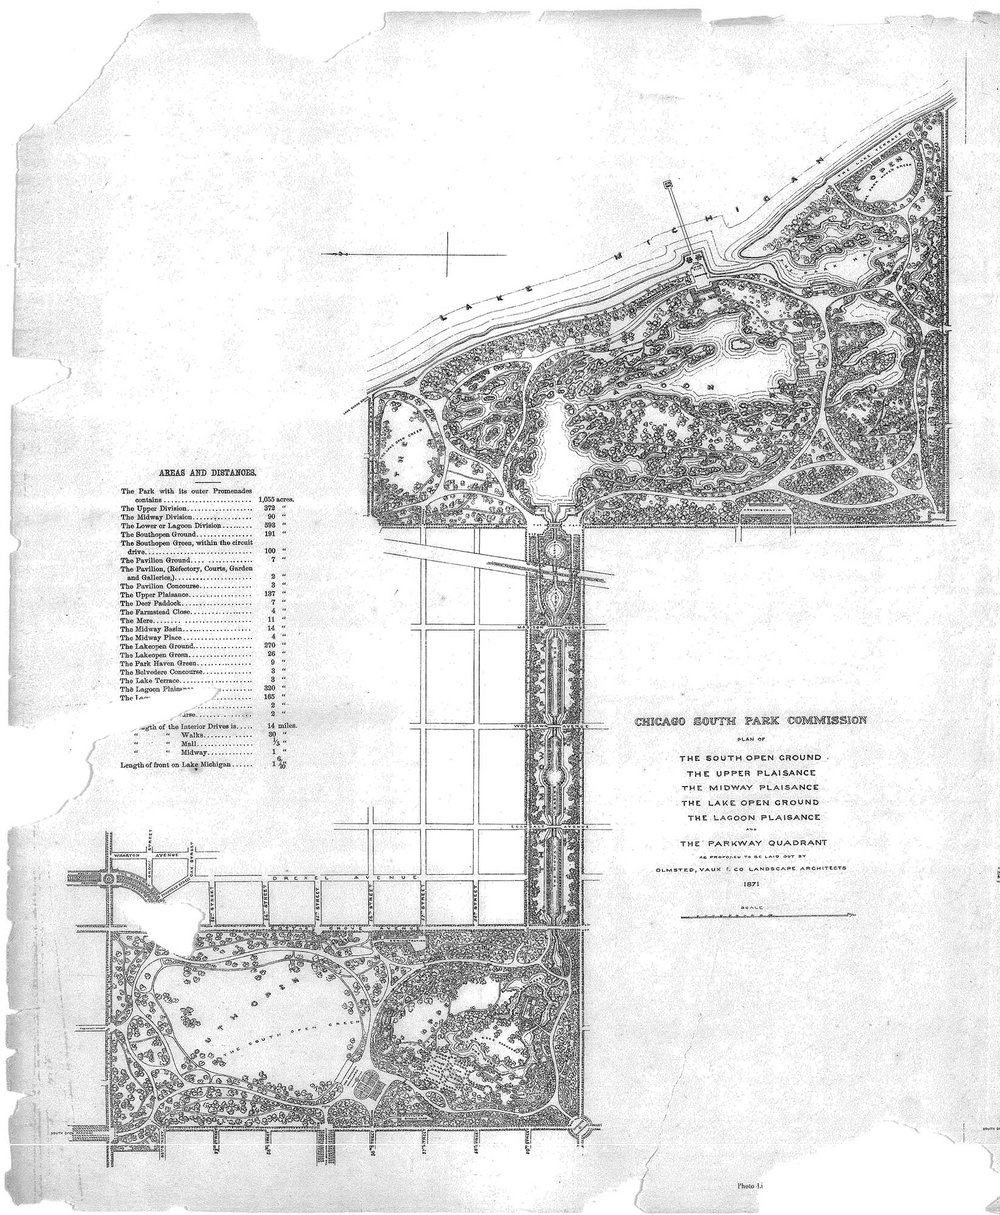 Plan of South Park (now Jackson and Washington Parks and Midway Plaisance) Olmsted & Vaux, 1871. Chicago Park District Records, Special Collections, Chicago Public Library.